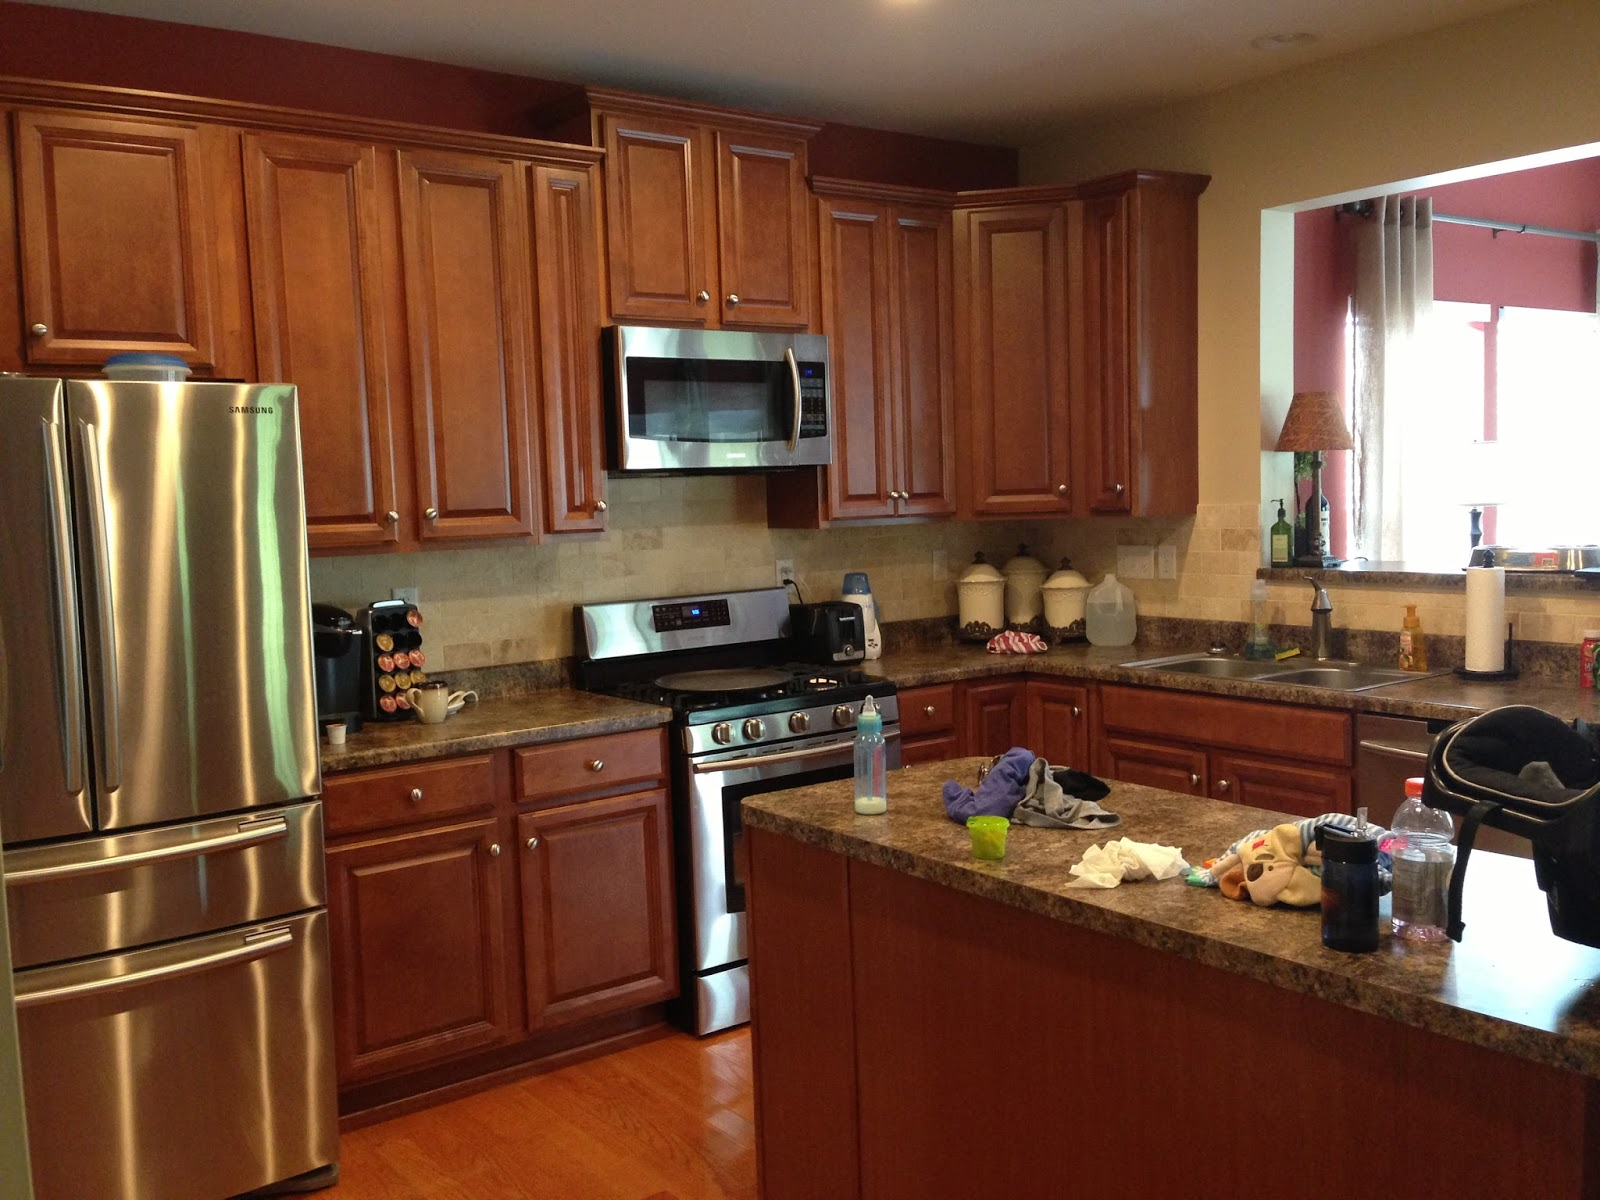 renew with color kitchen cabinets in spanish